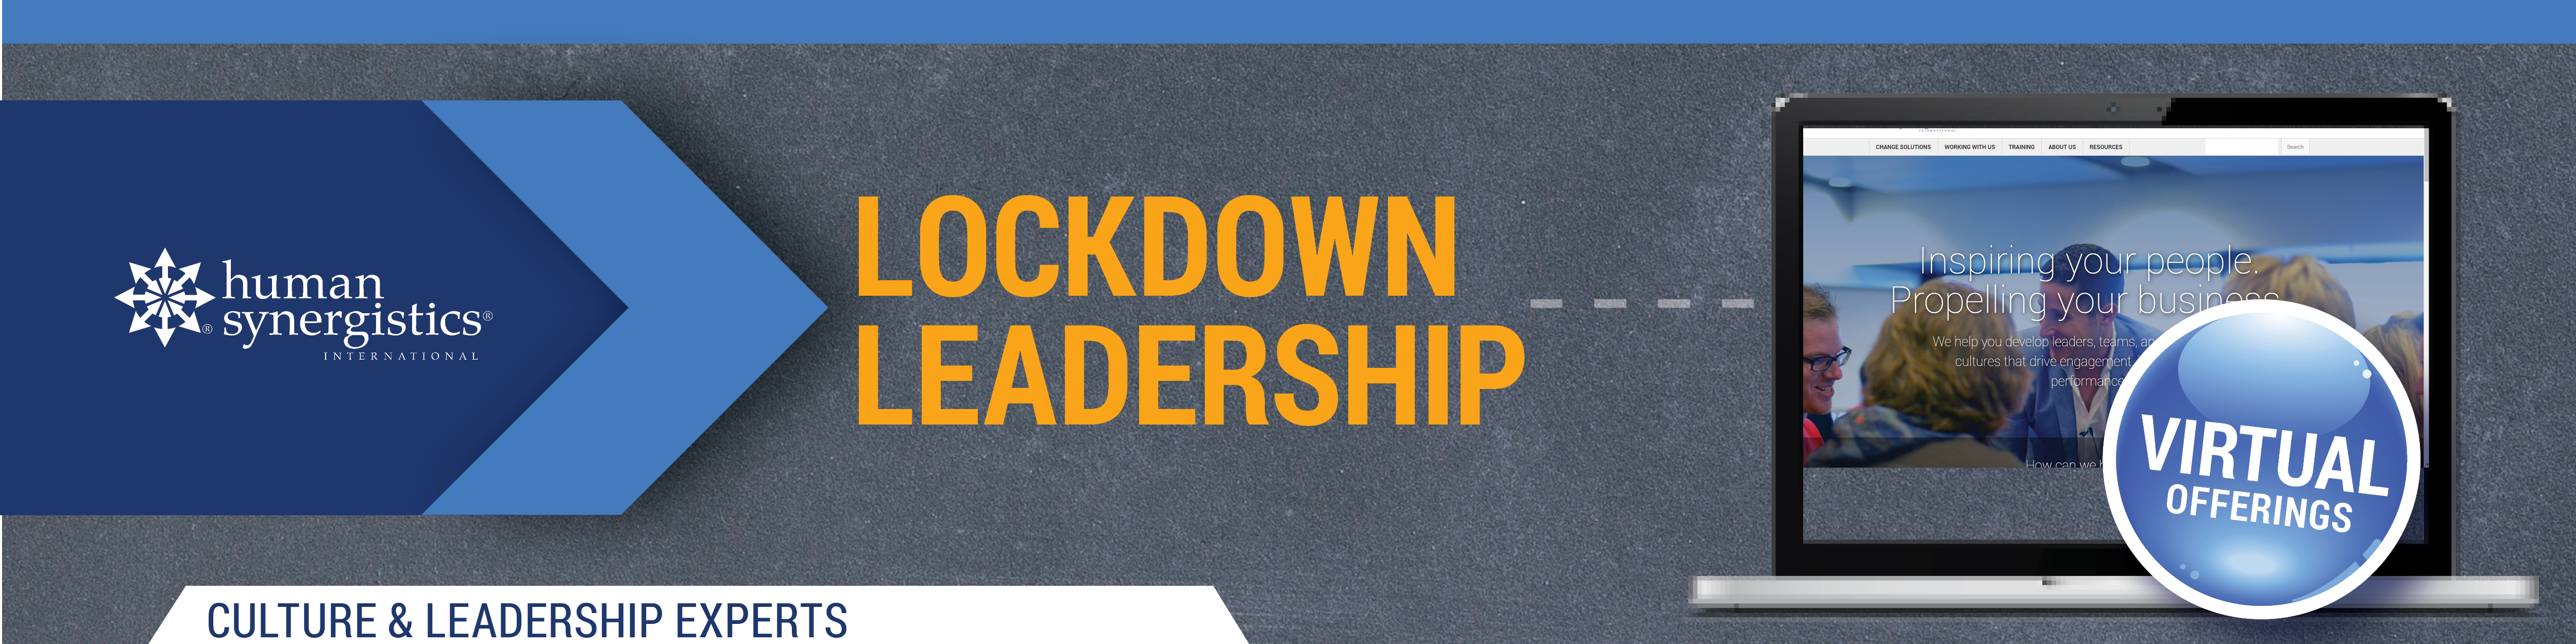 Leadership Lockdown